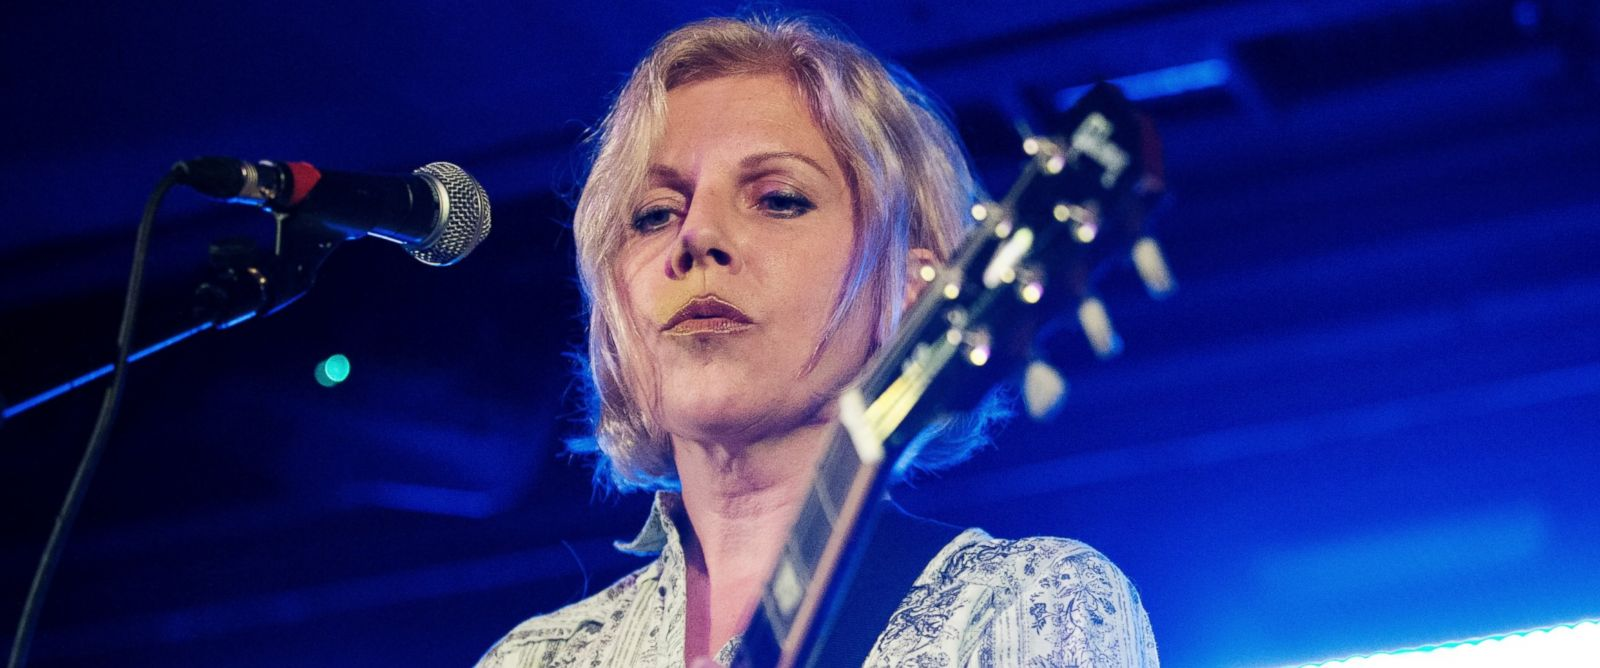 PHOTO: Tanya Donelly performs on stage at Oran Mor on Sept. 17, 2014 in Glasgow, United Kingdom.